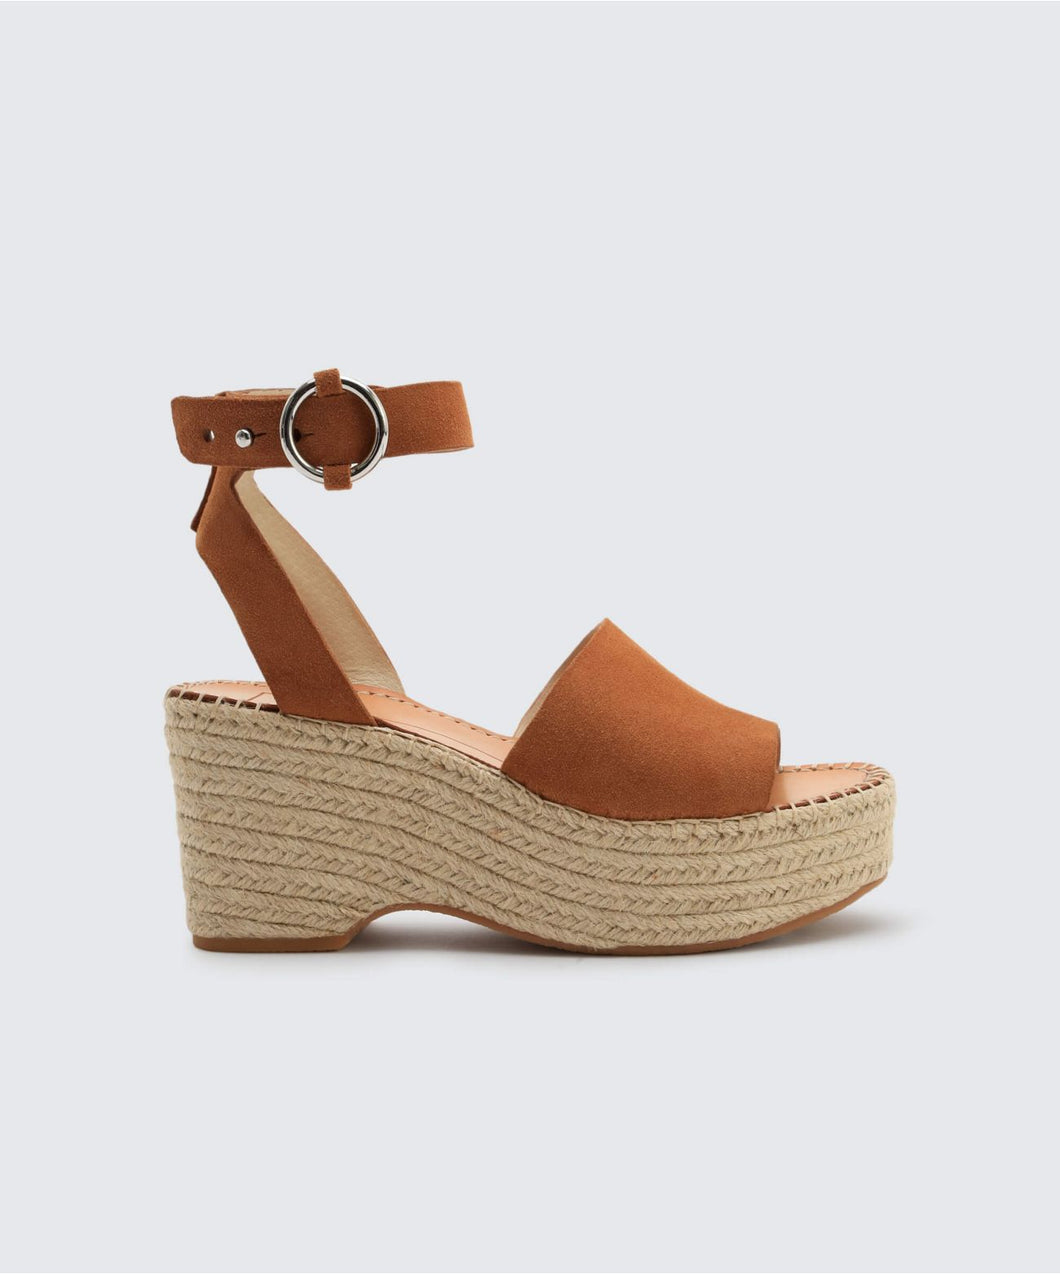 LESLY WEDGES SADDLE -   Dolce Vita